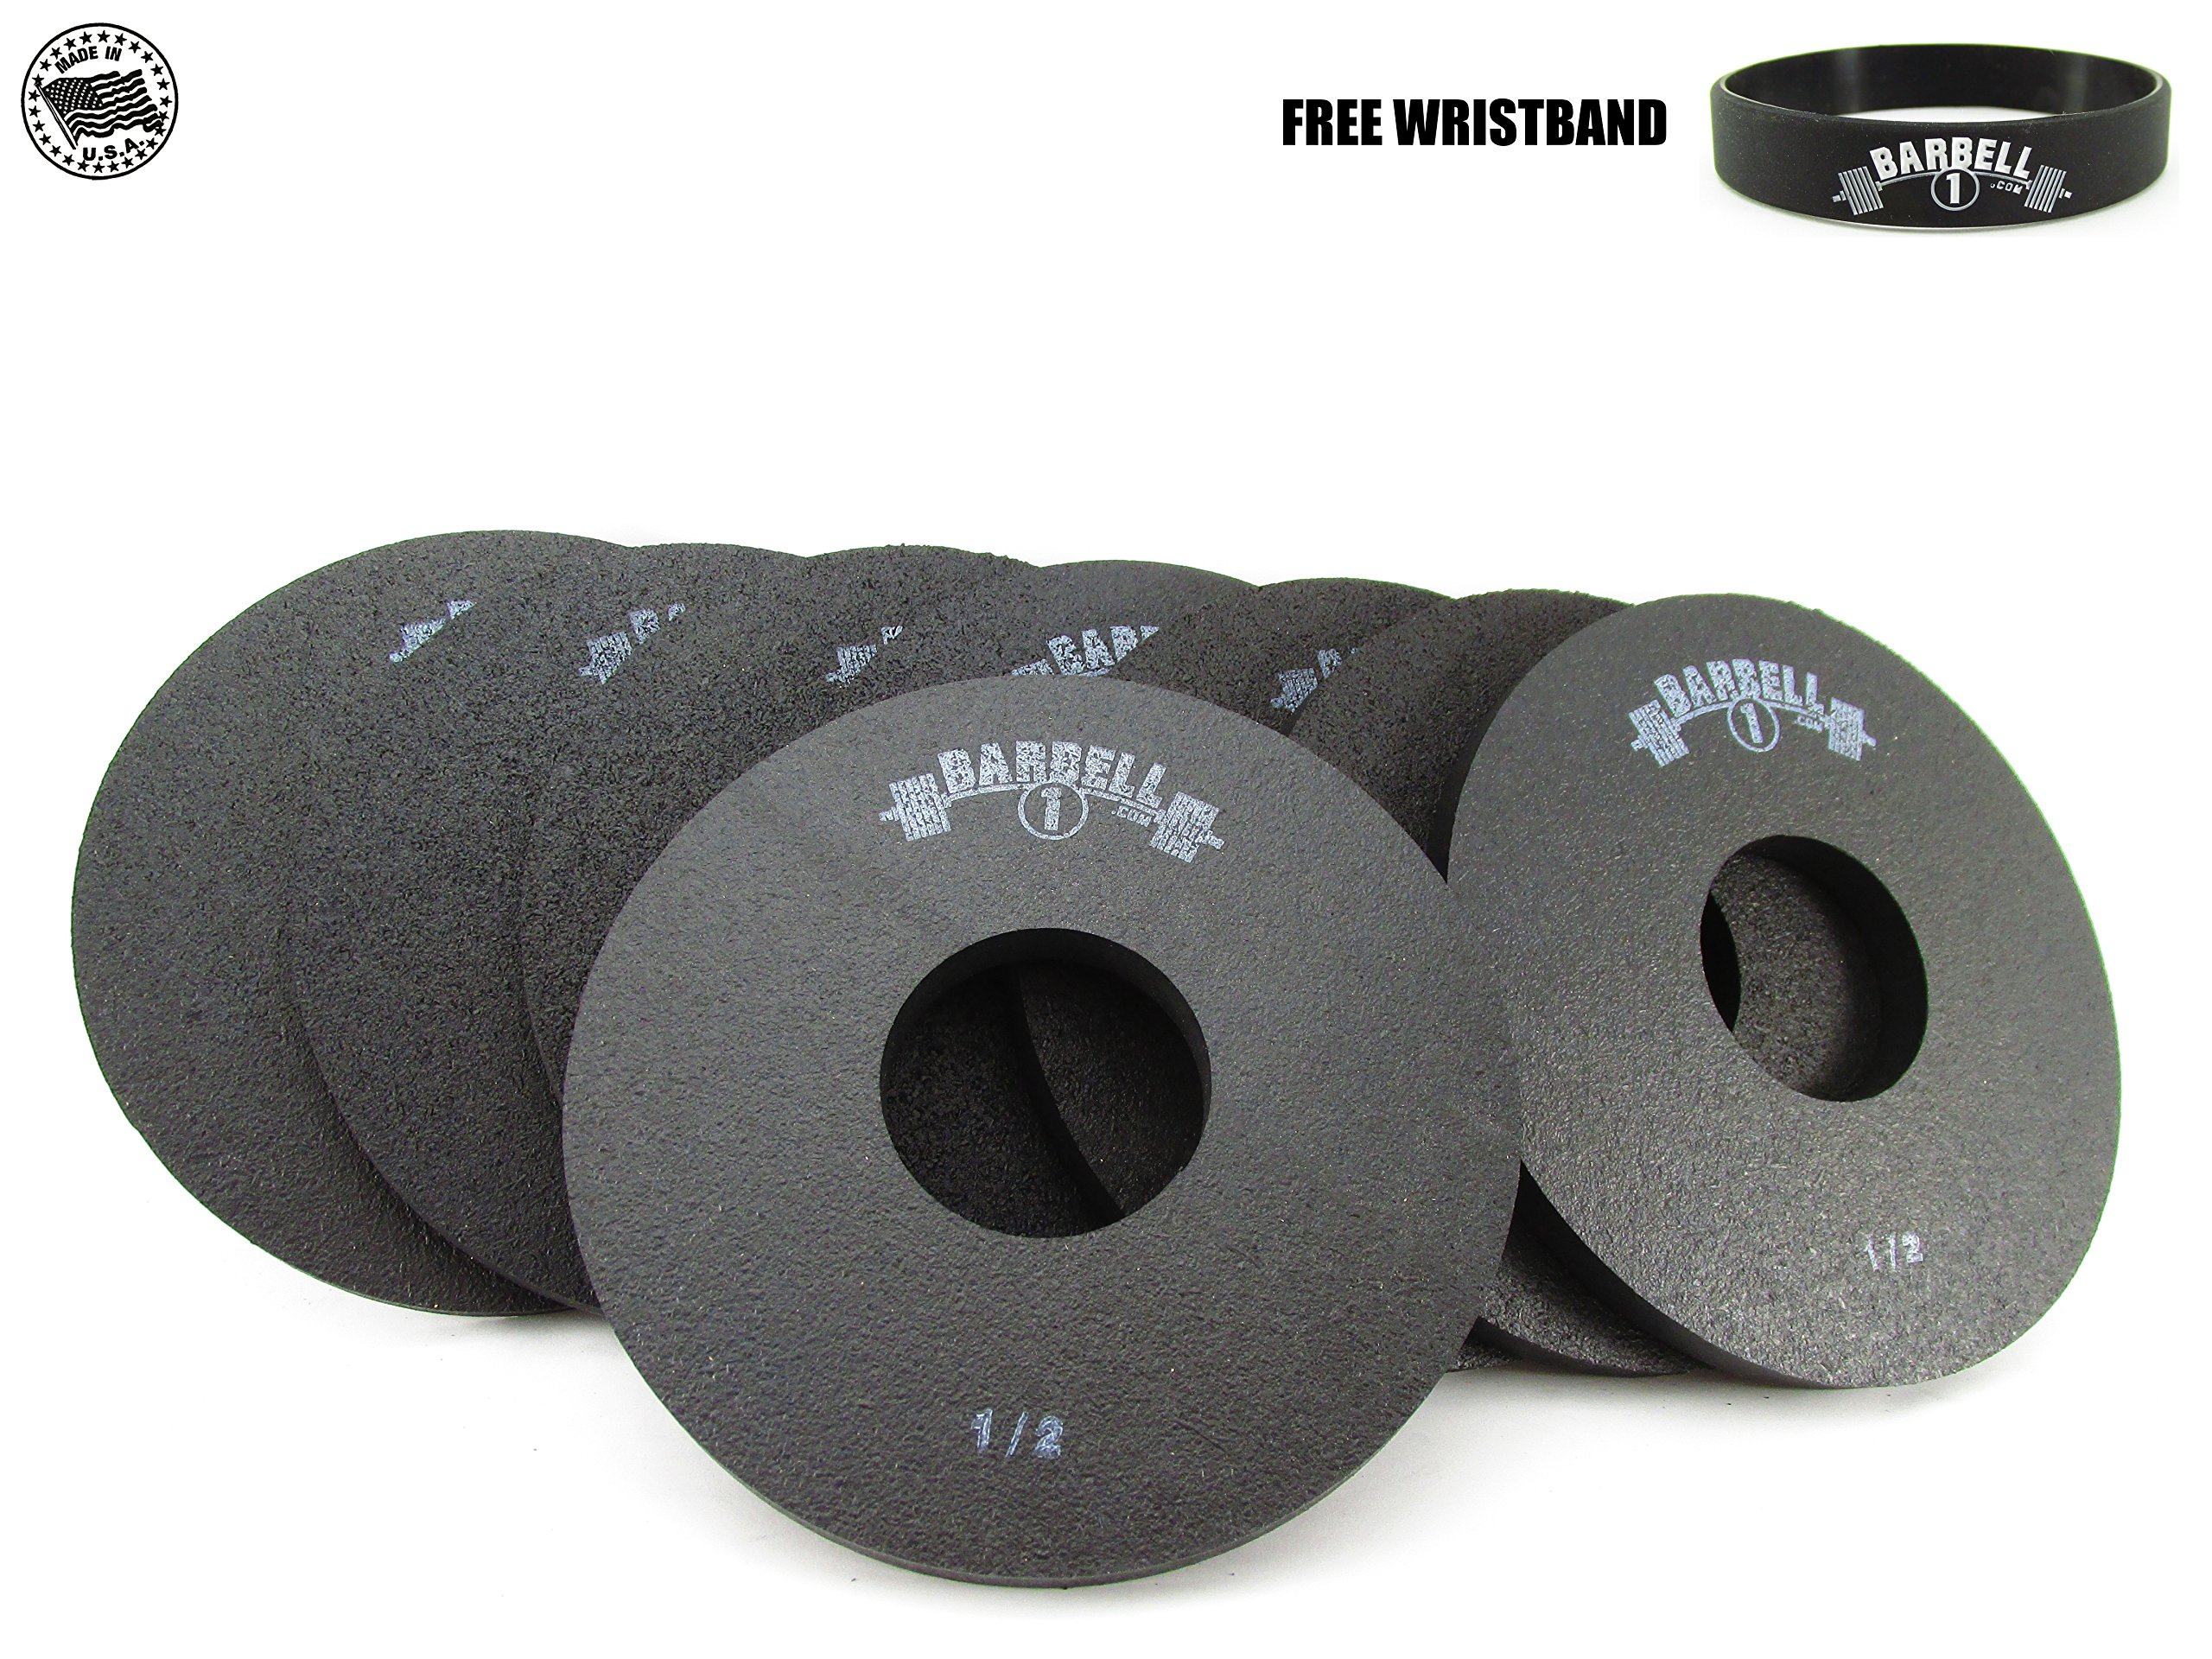 Barbell 1 Half Pound Fractional Rubber Olympic Weight Plates - 2, 4, 6, or 8 Pc Set (2 plates, 1/2 lb.) by Barbell 1 (Image #1)